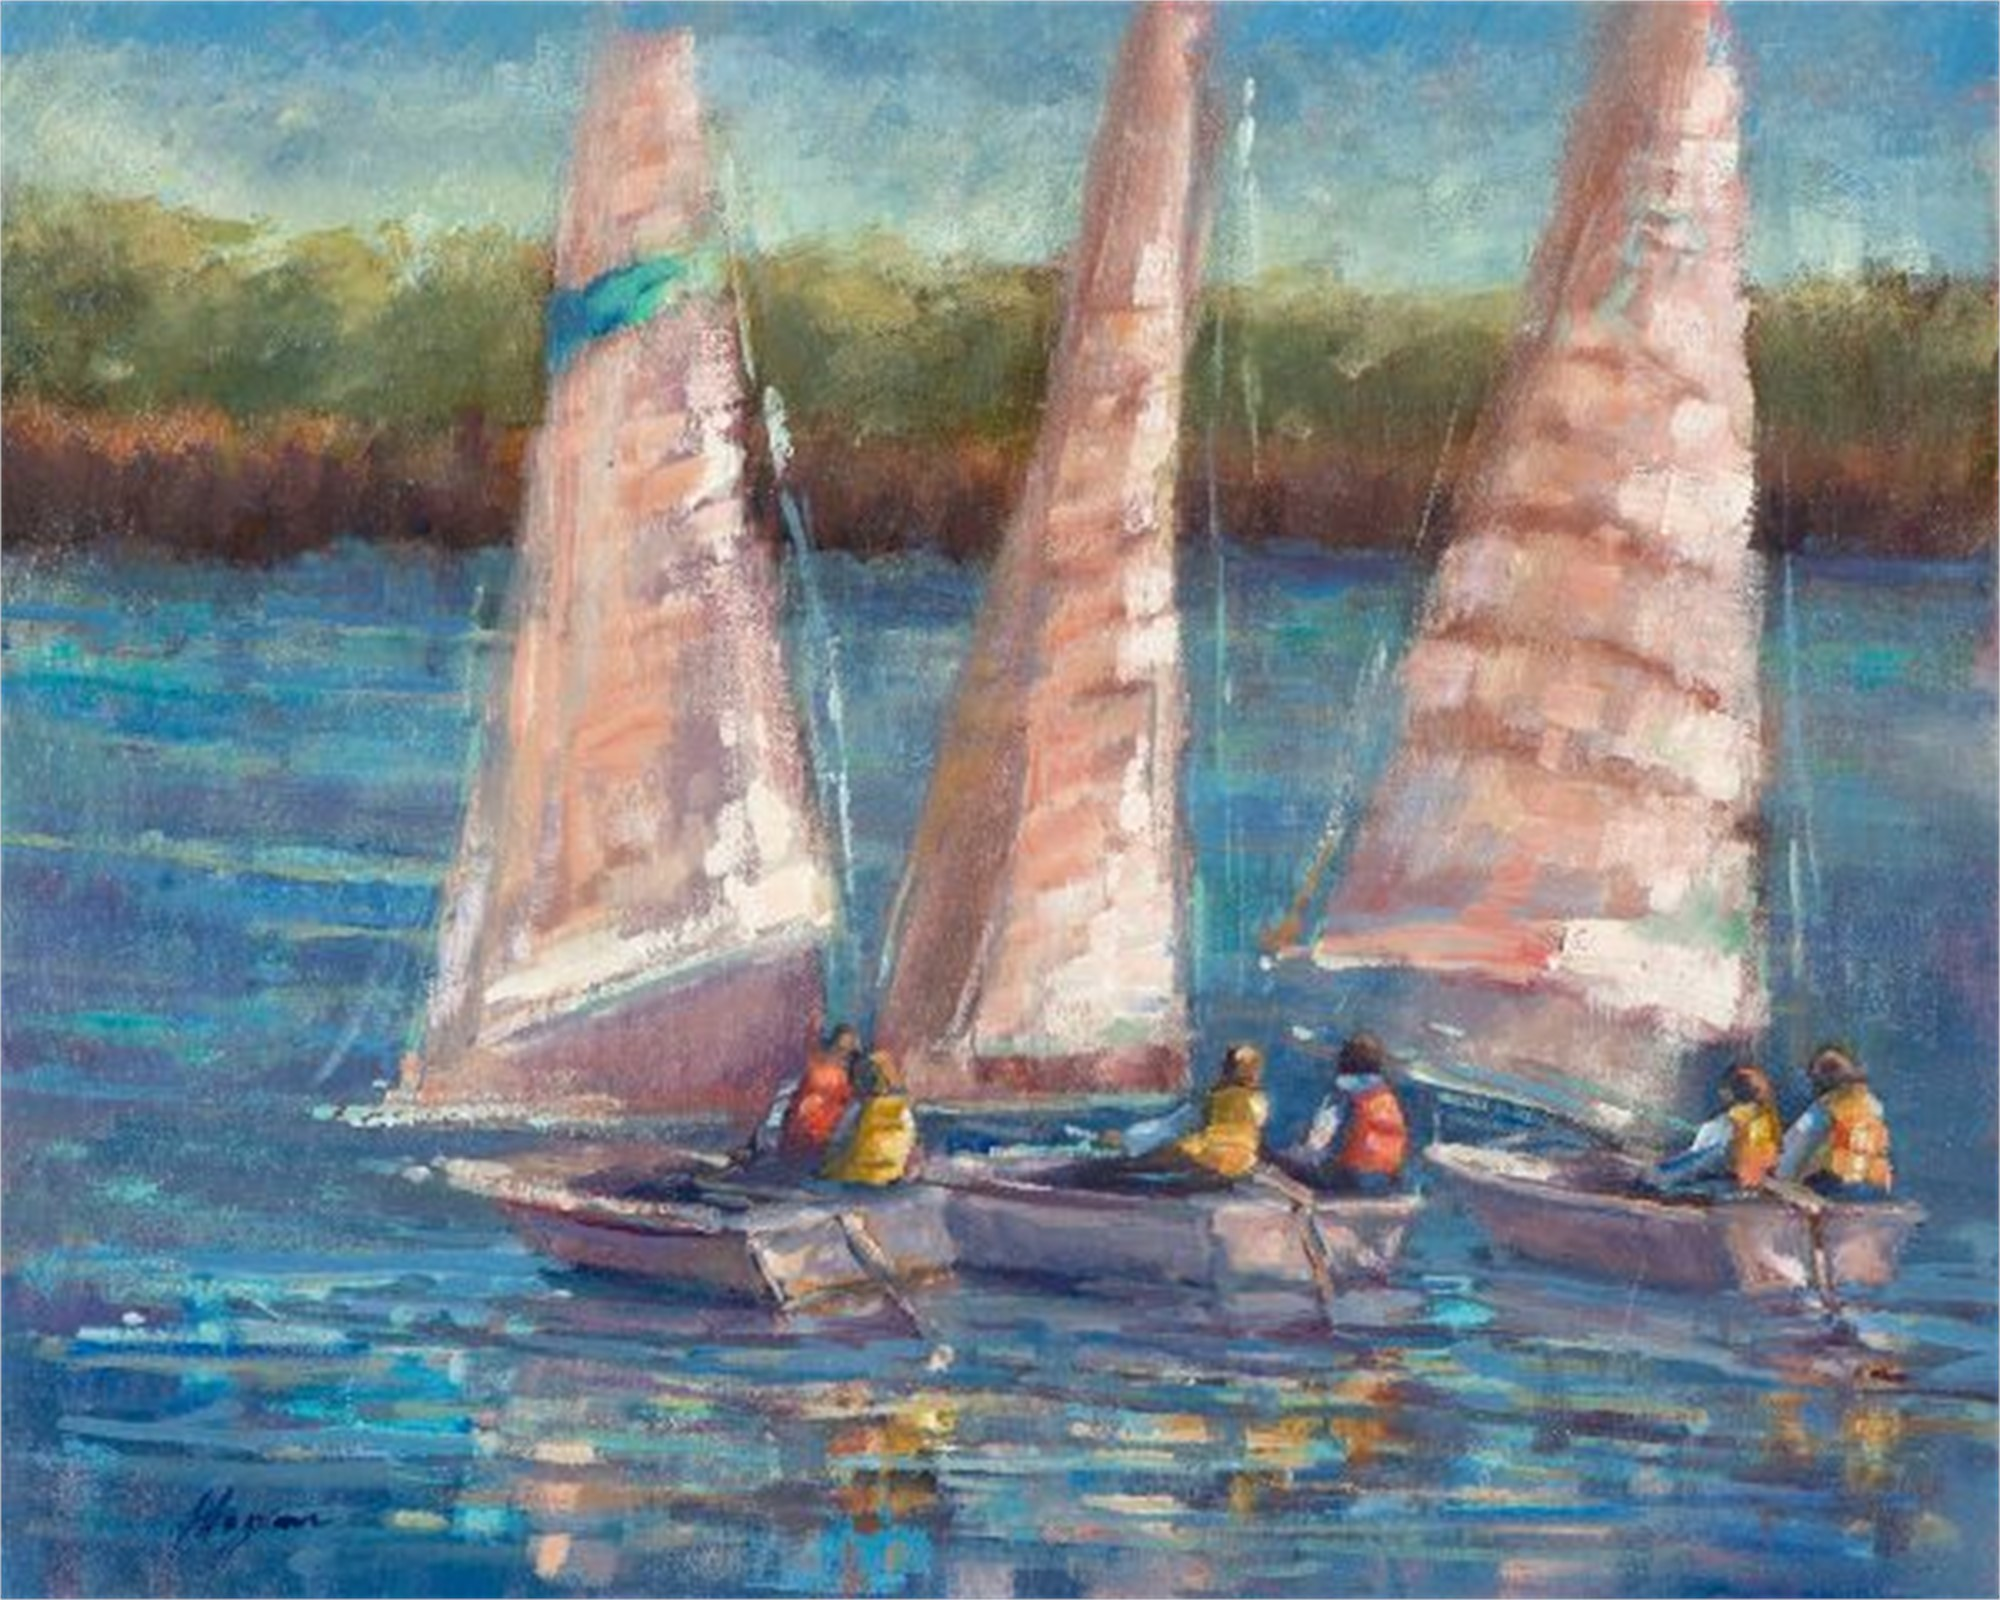 Afternoon Sail by Karen Hewitt Hagan